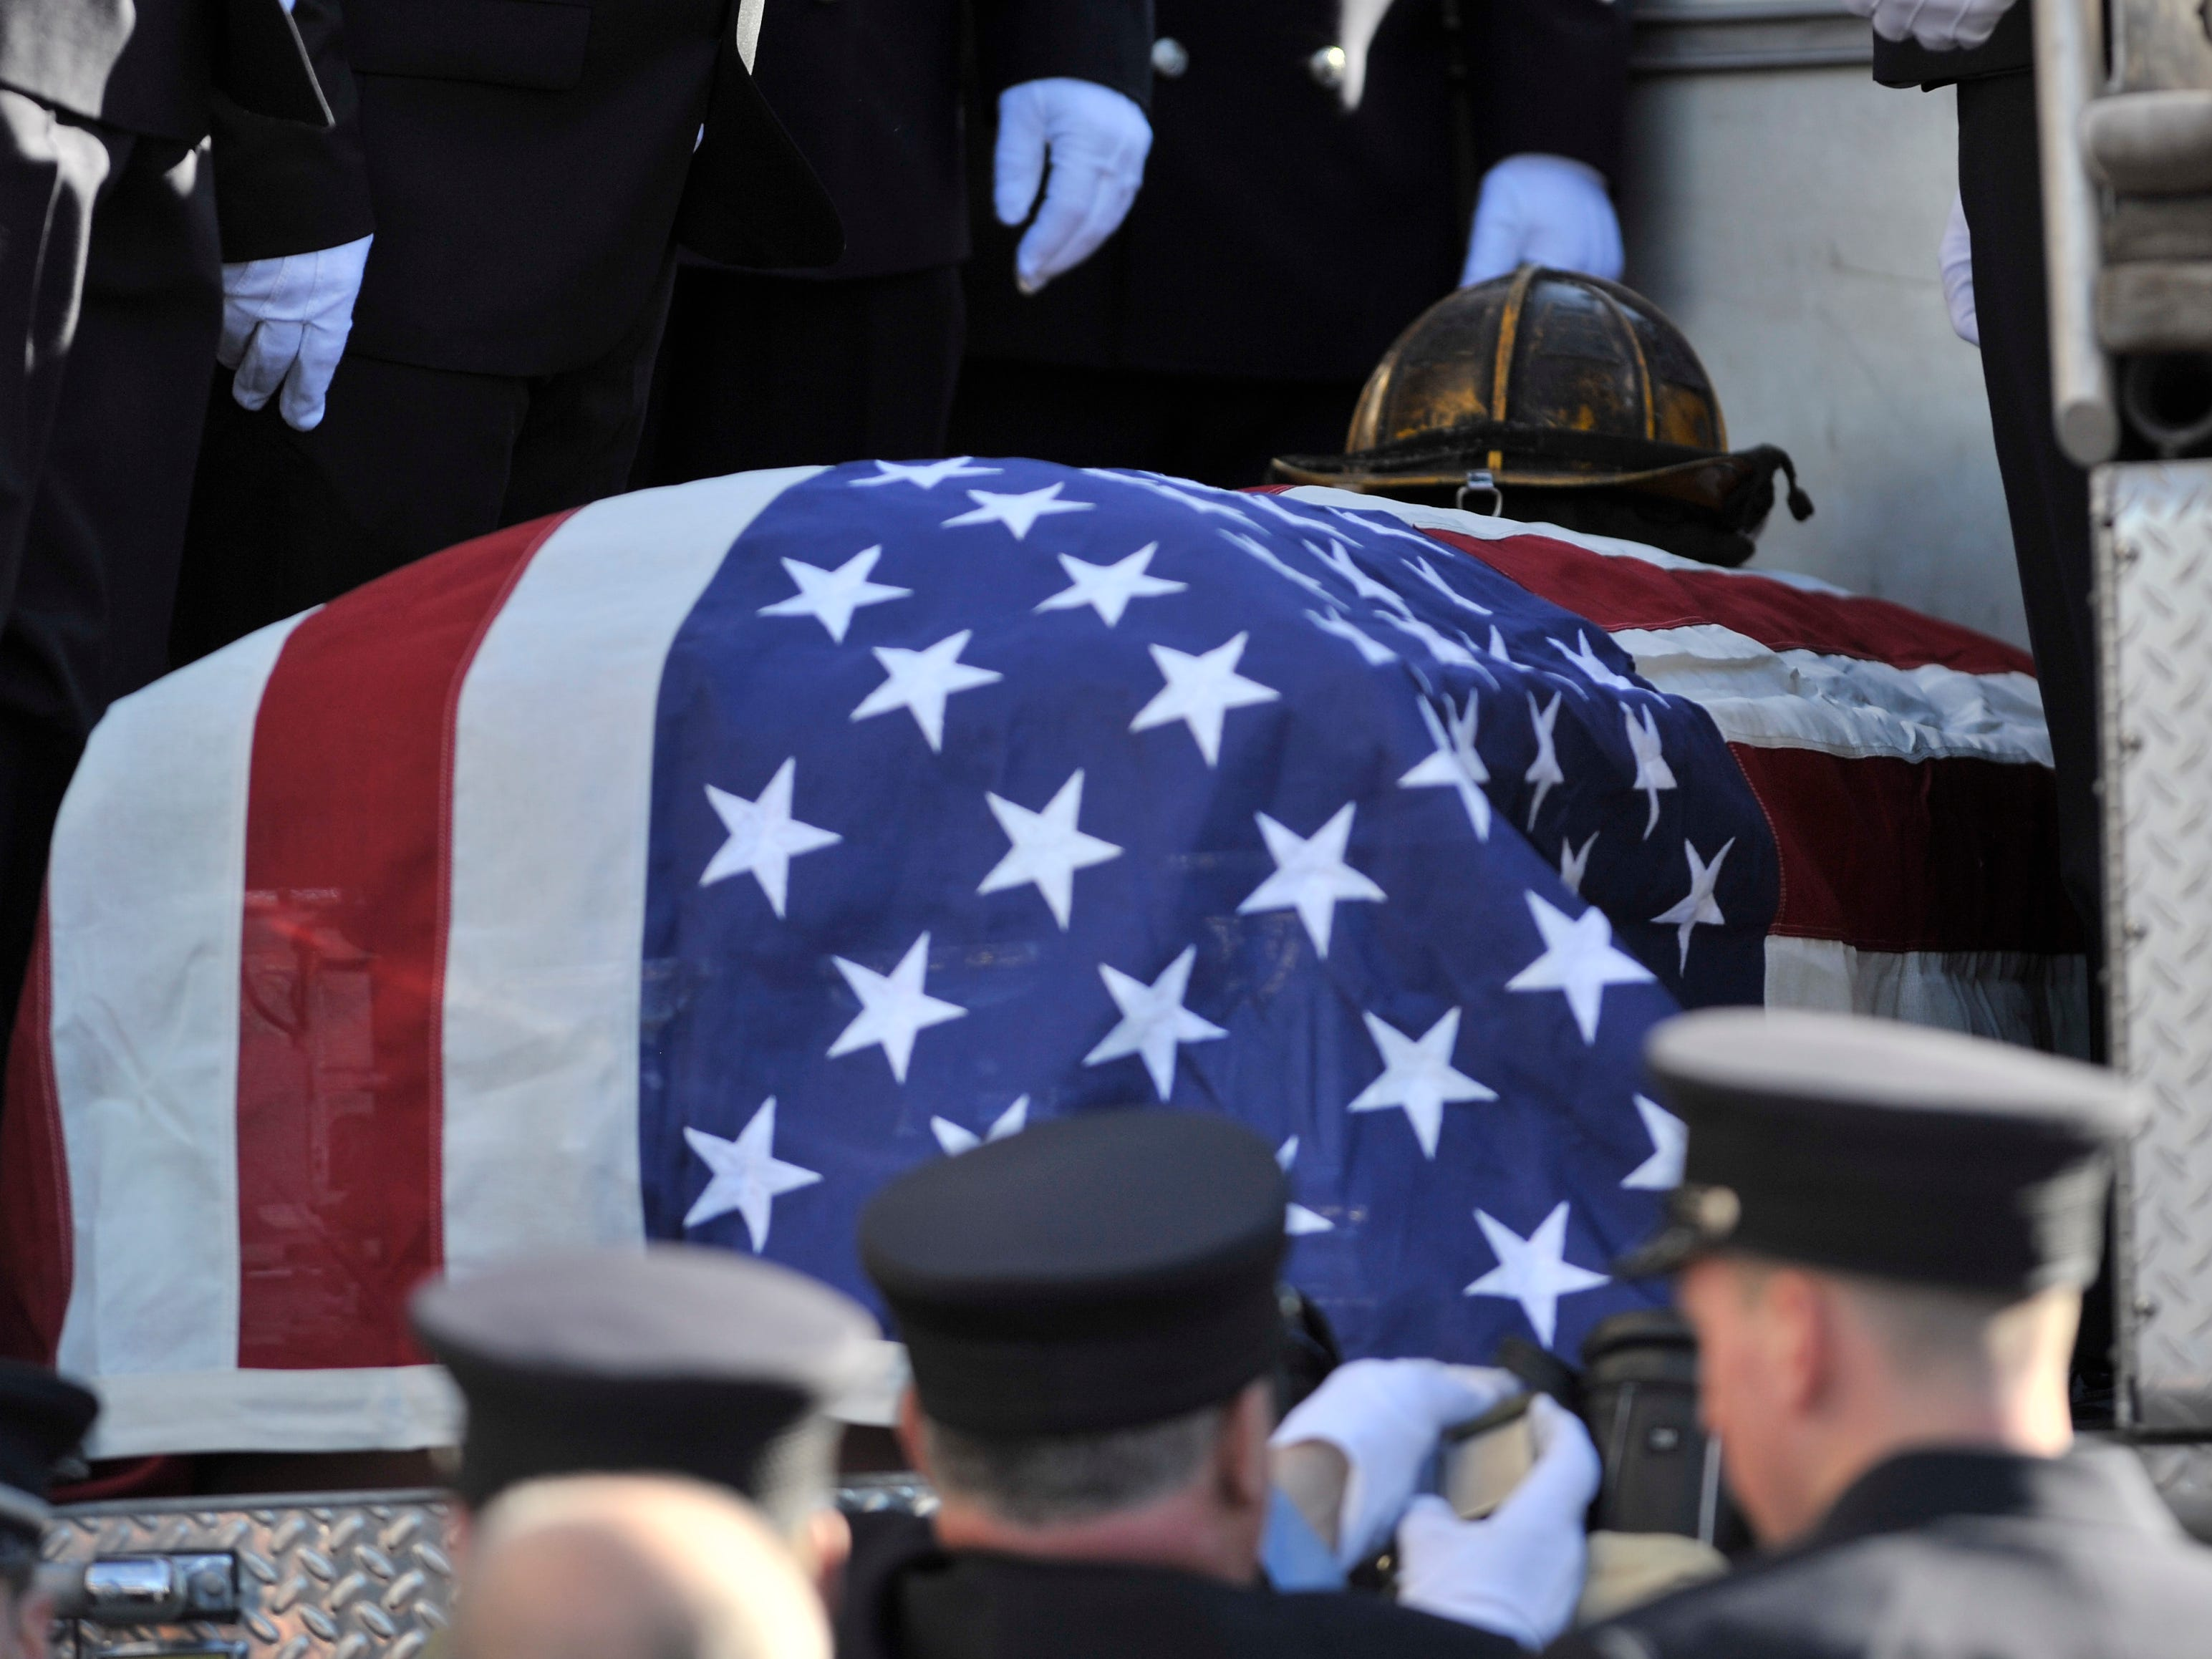 The helmet of the fallen Detroit firefighter rests on his casket before this engine proceeds to the cemetery.